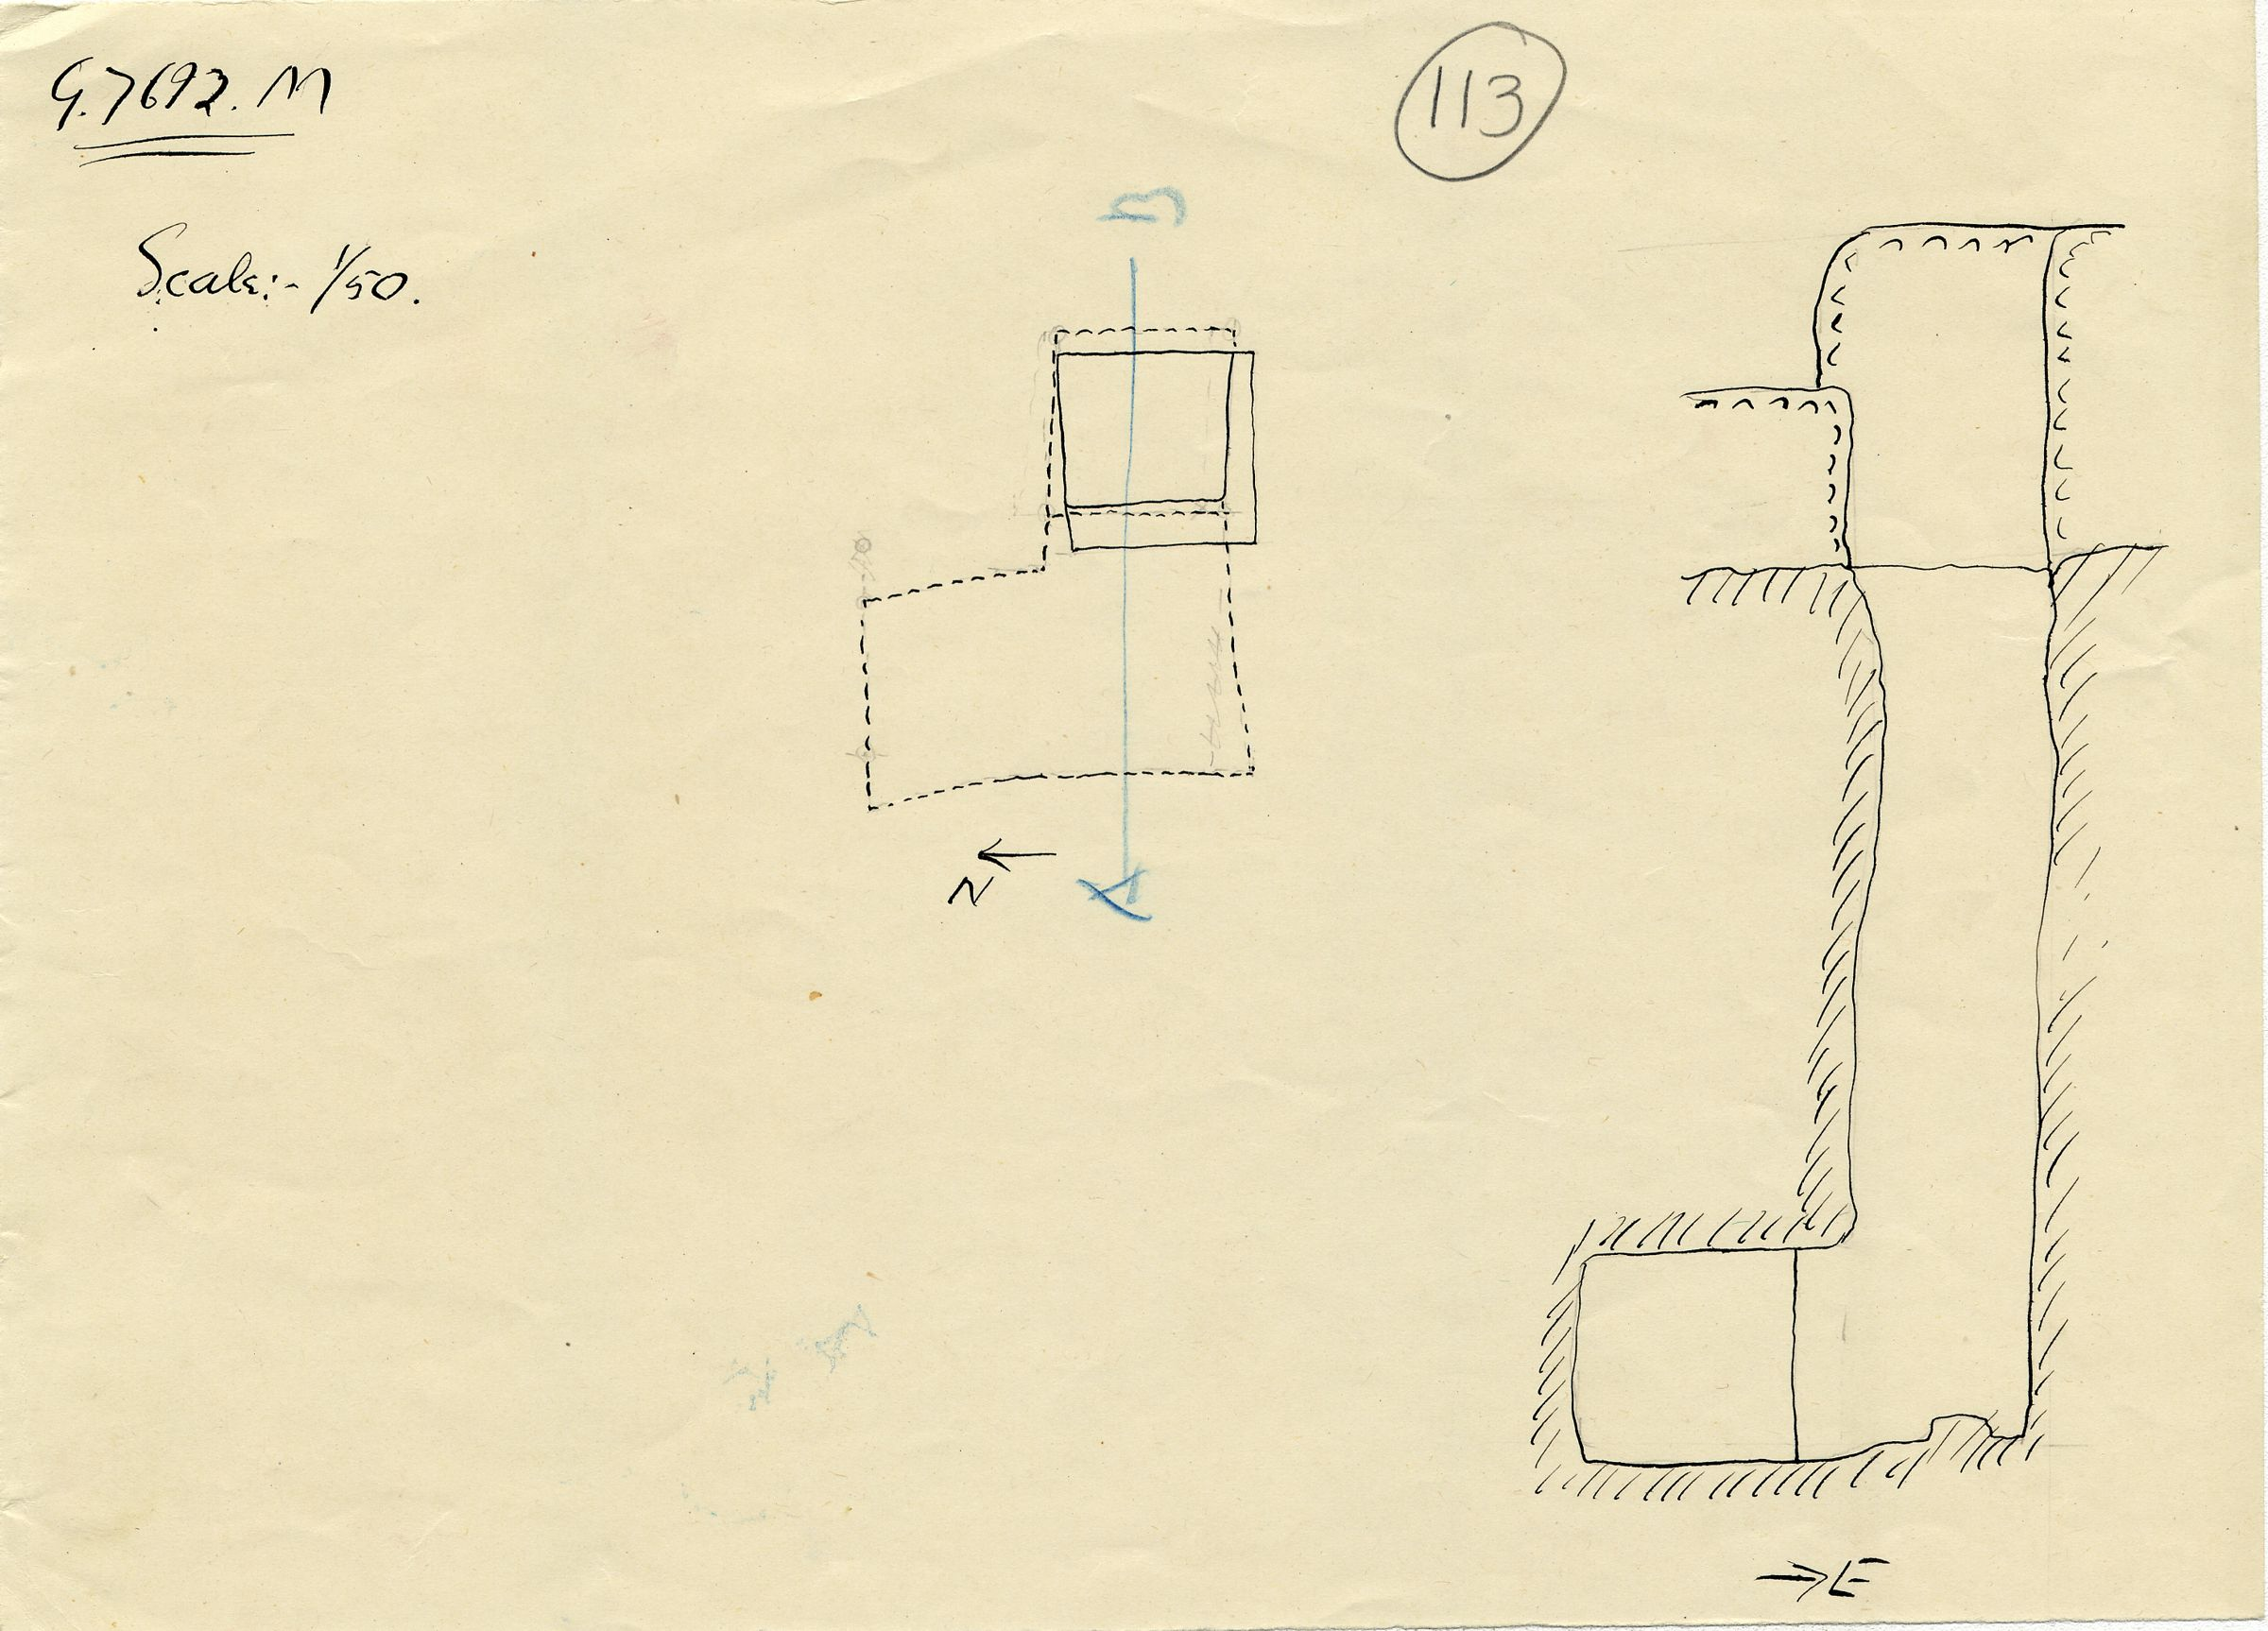 Maps and plans: G 7692a, Shaft M